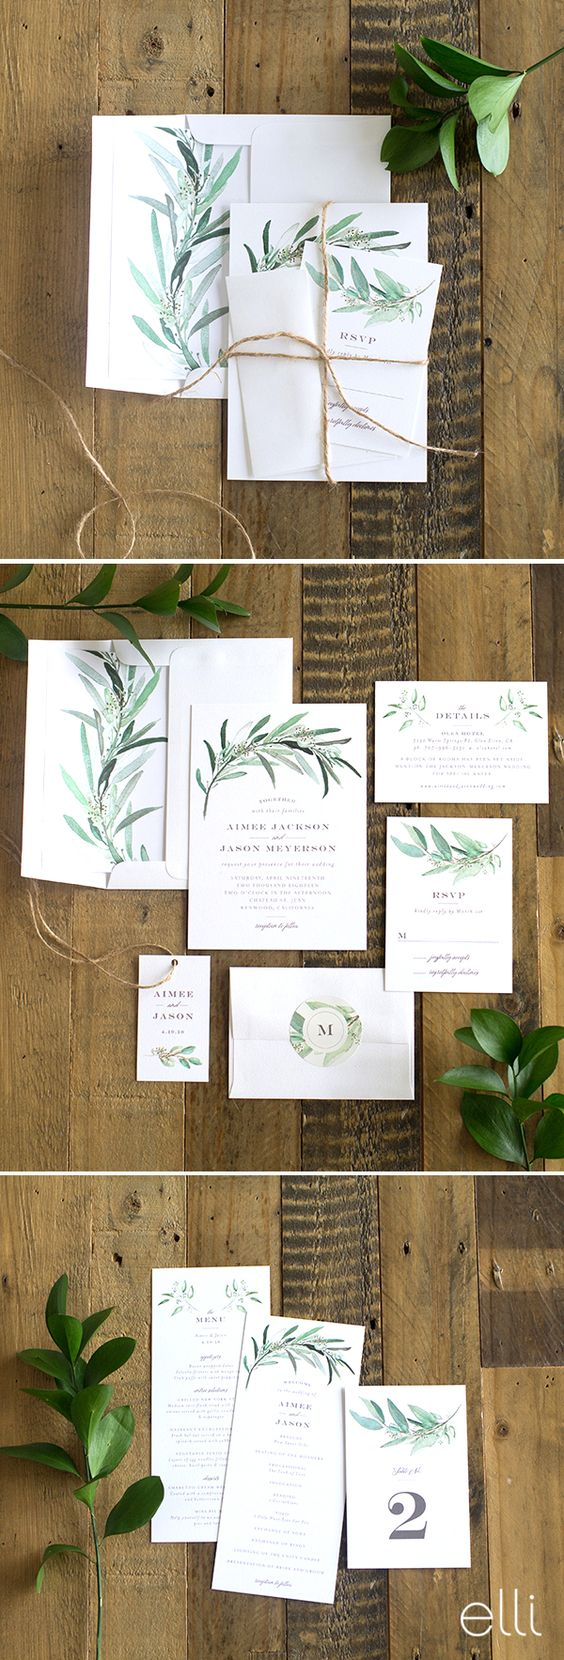 watch wedding invitation movie online eng sub%0A Trending for       greenery wedding invitations from Elli com   Wedding  Bells   Pinterest   Greenery  Weddings and Wedding